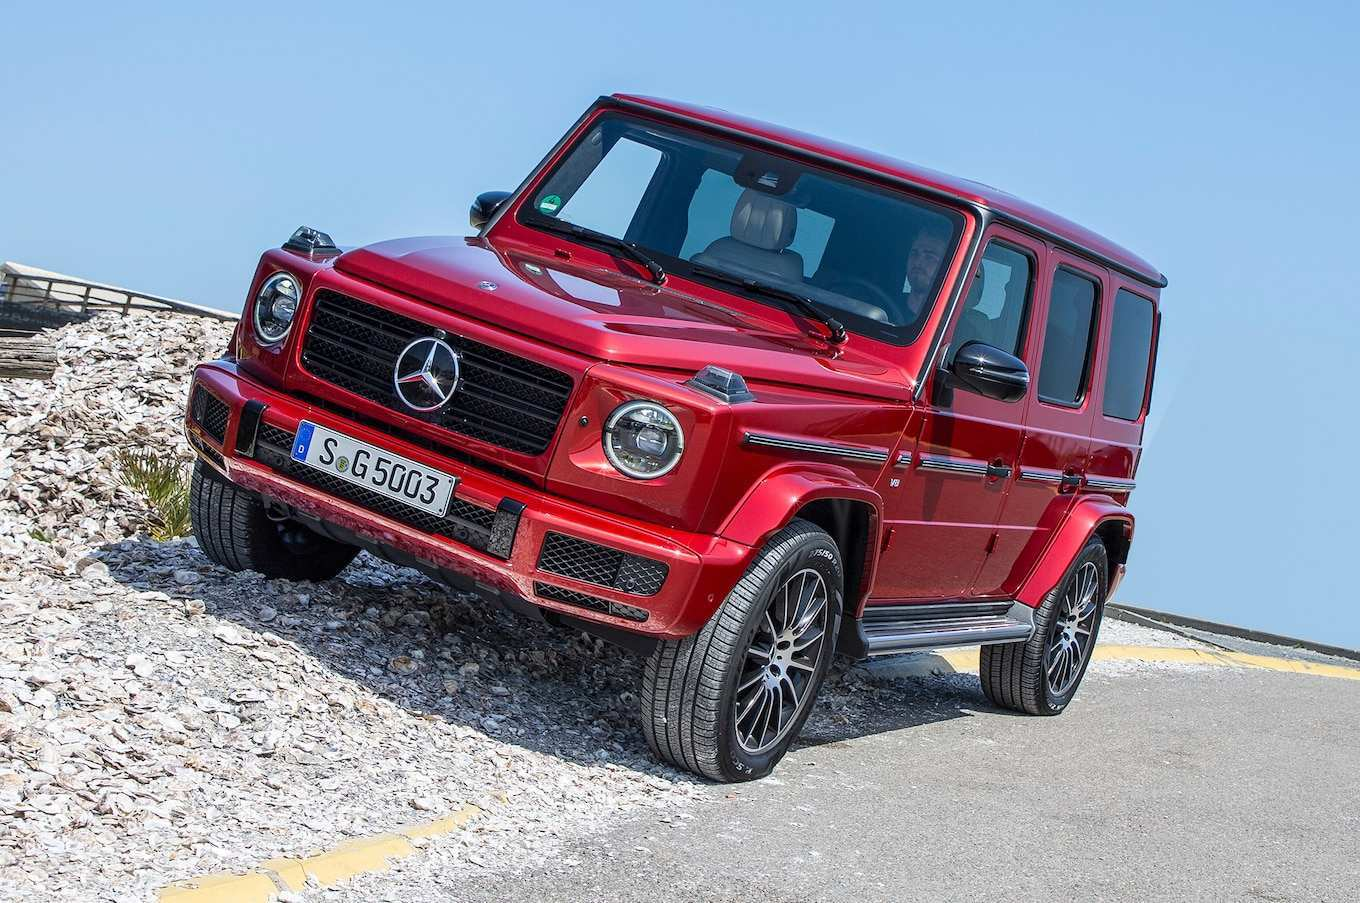 40 Great 2019 Mercedes G Wagon For Sale Price Performance with 2019 Mercedes G Wagon For Sale Price